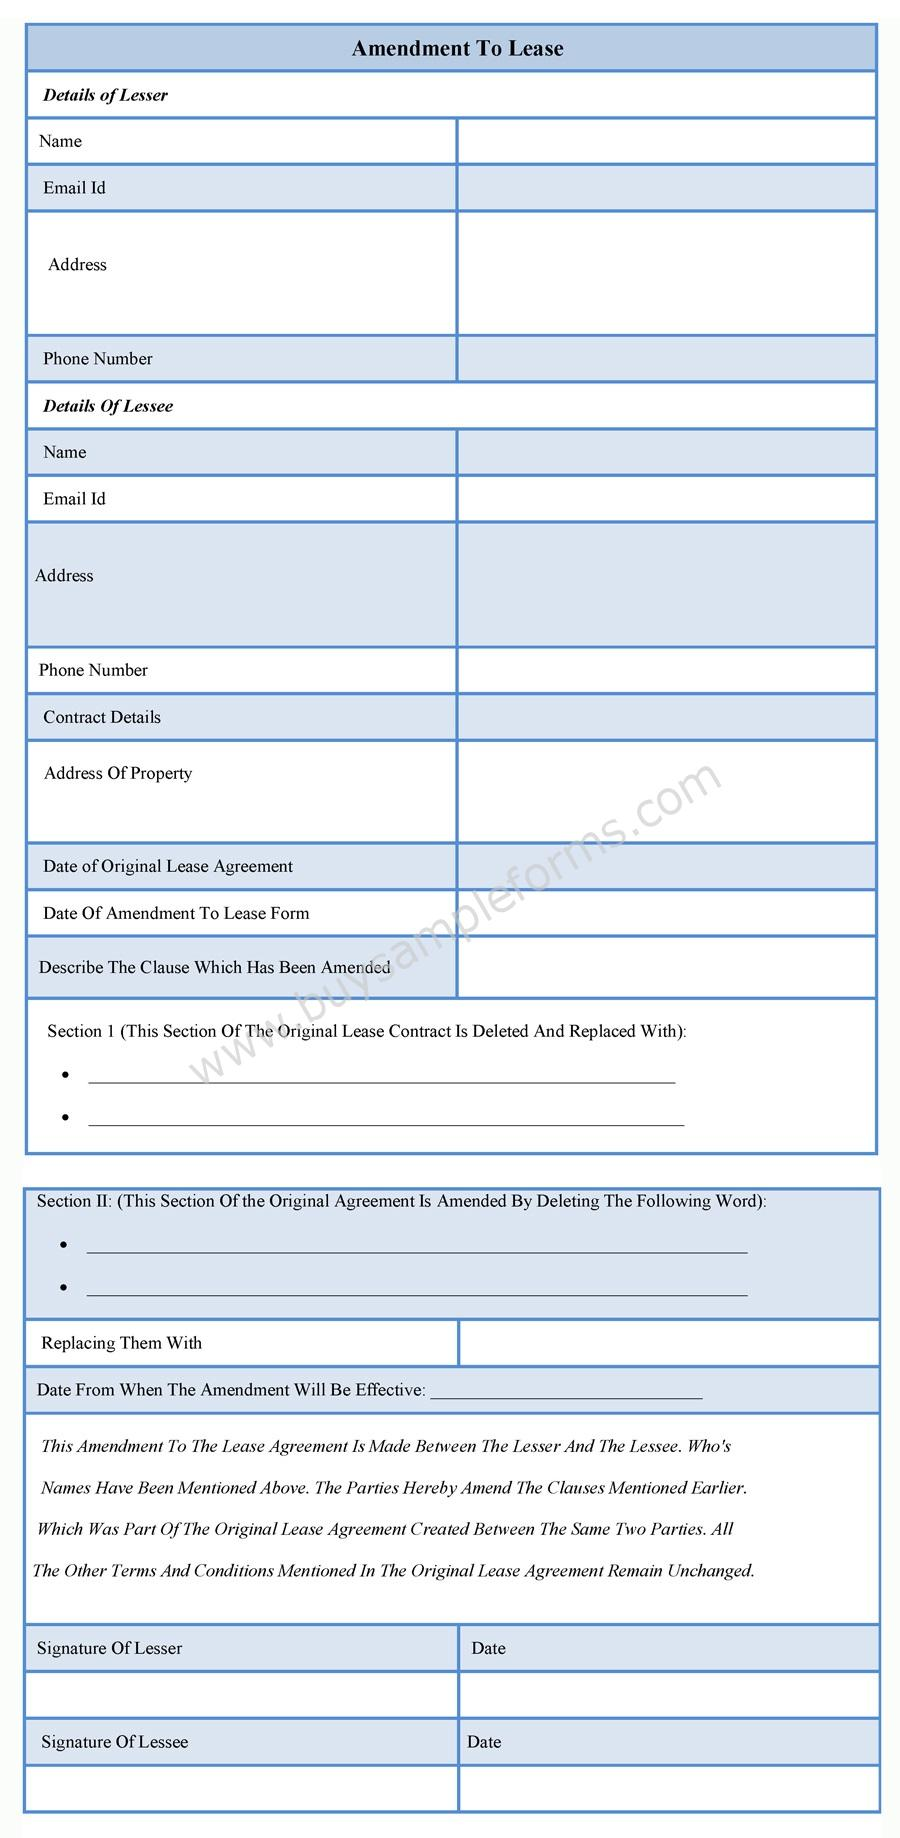 Amended Returns & Form 1040X